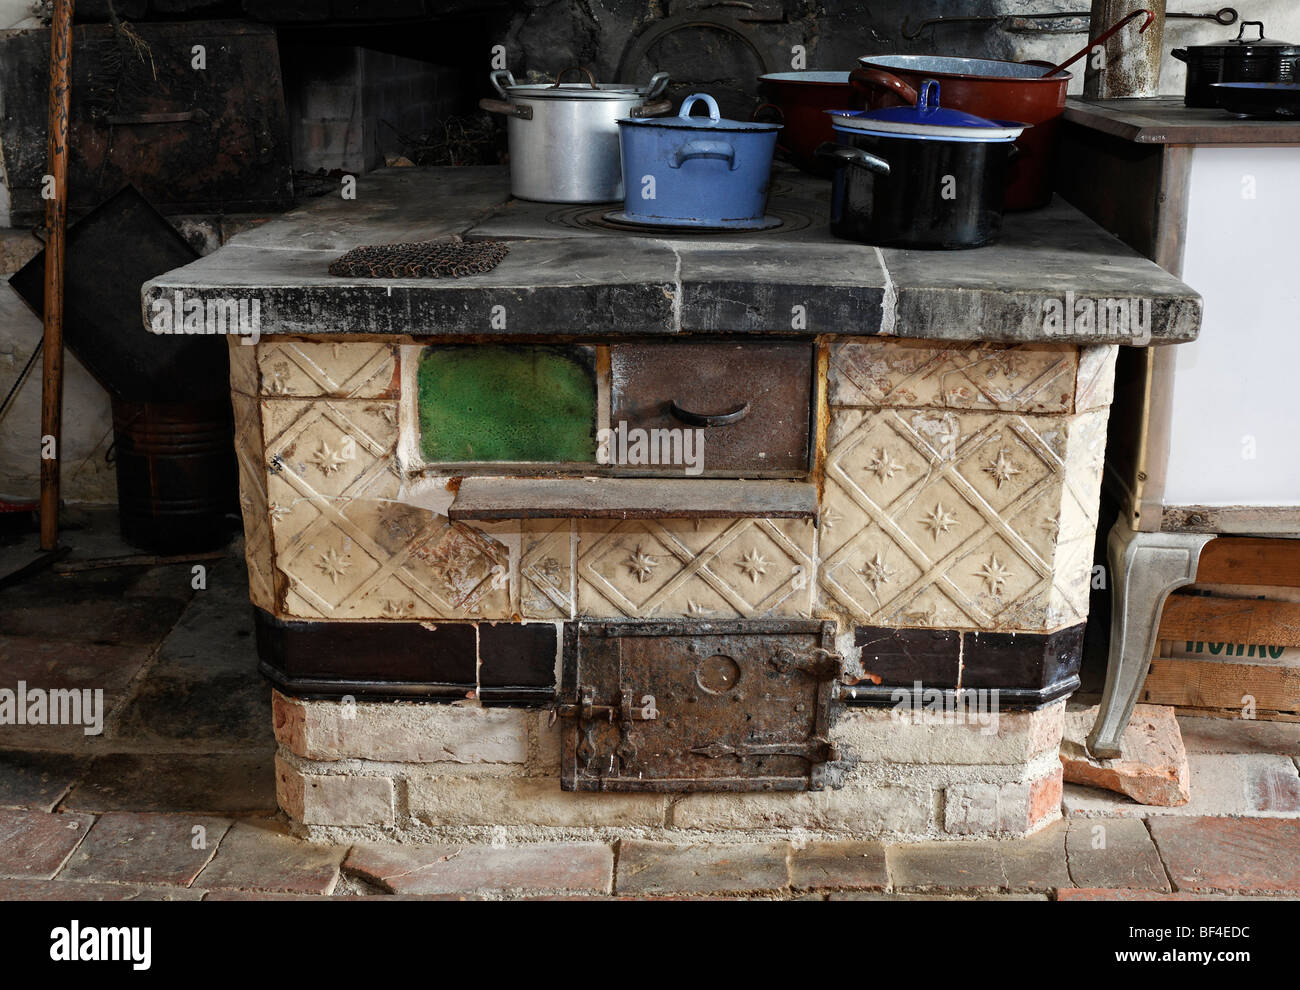 Old wood stove, kitchen in the Haus Andrinet house from 1740, Wolfegg farmhouse museum, Allgaeu region, Upper Swabia, - Stock Image